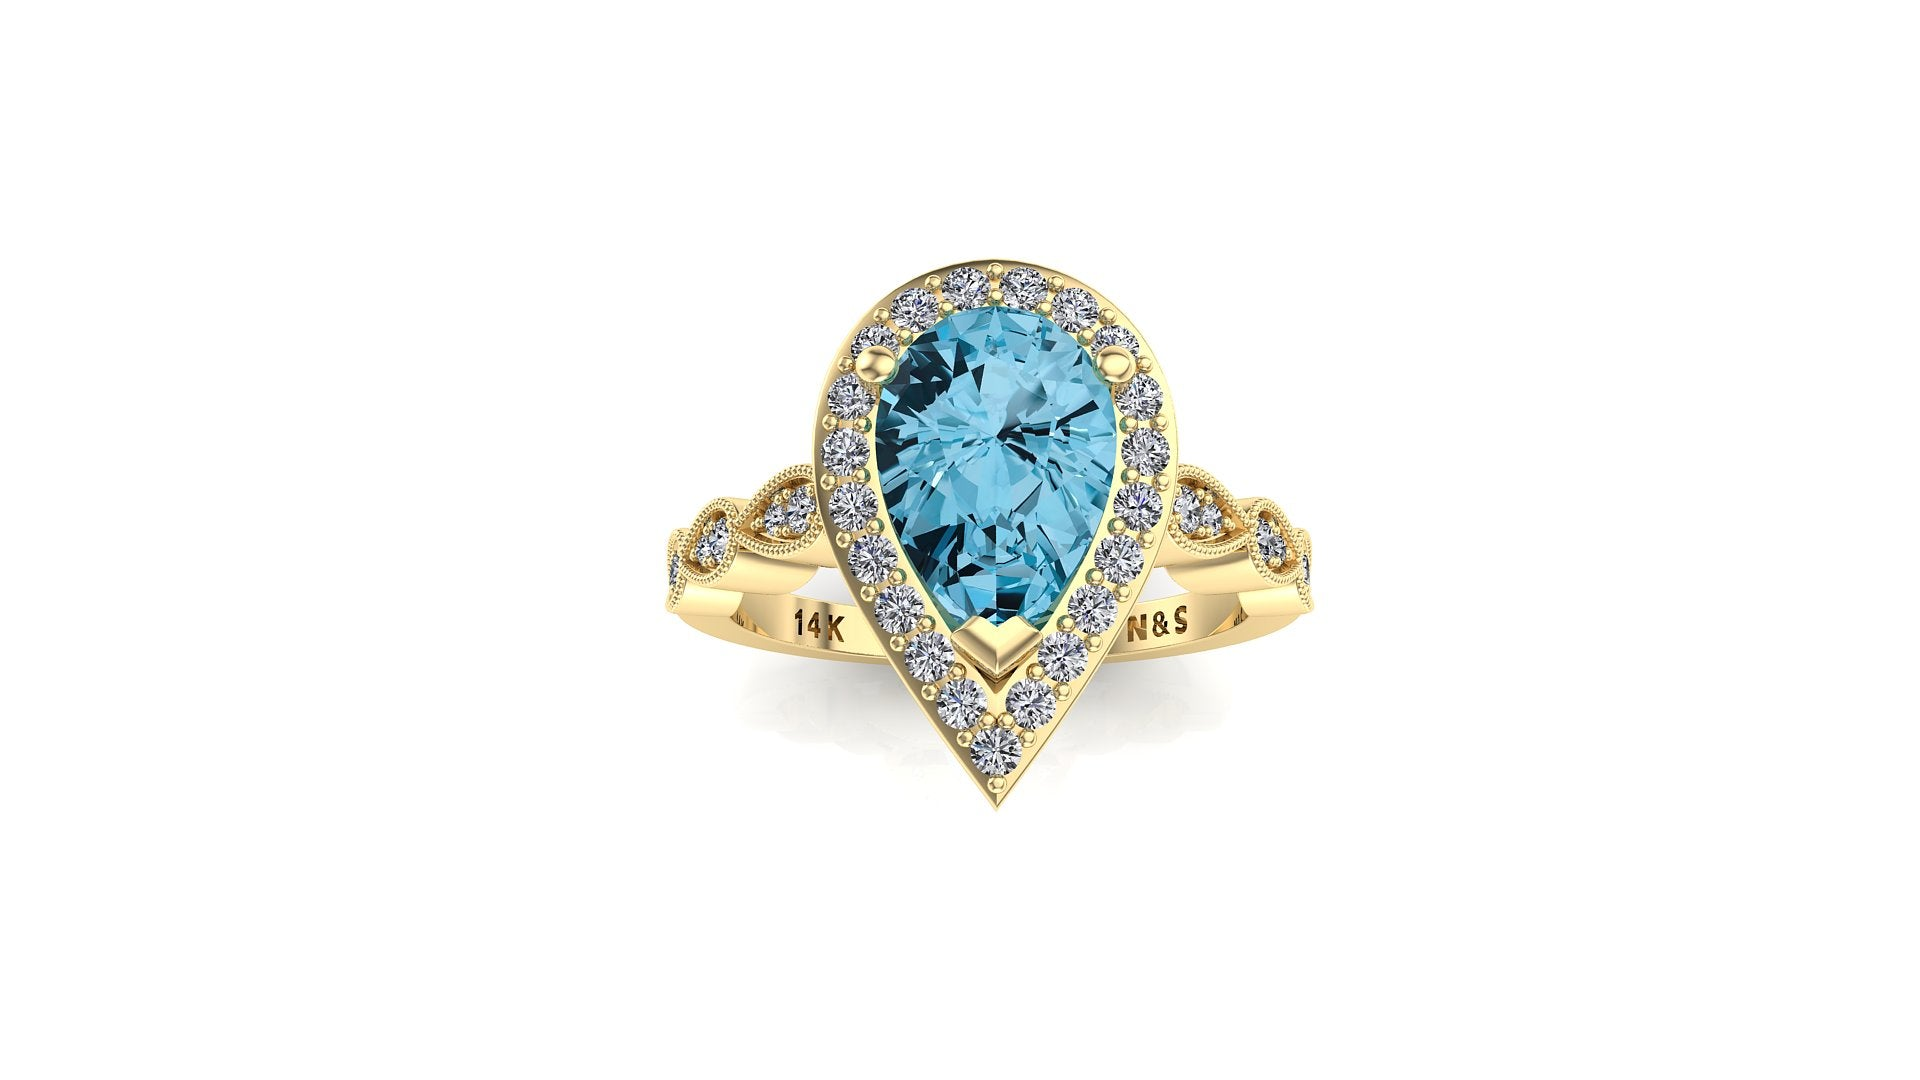 9x6mm (1.30ct) Milgrain Pear Cut Blue Topaz Diamond Halo 14K Gold Ring BSAQ009